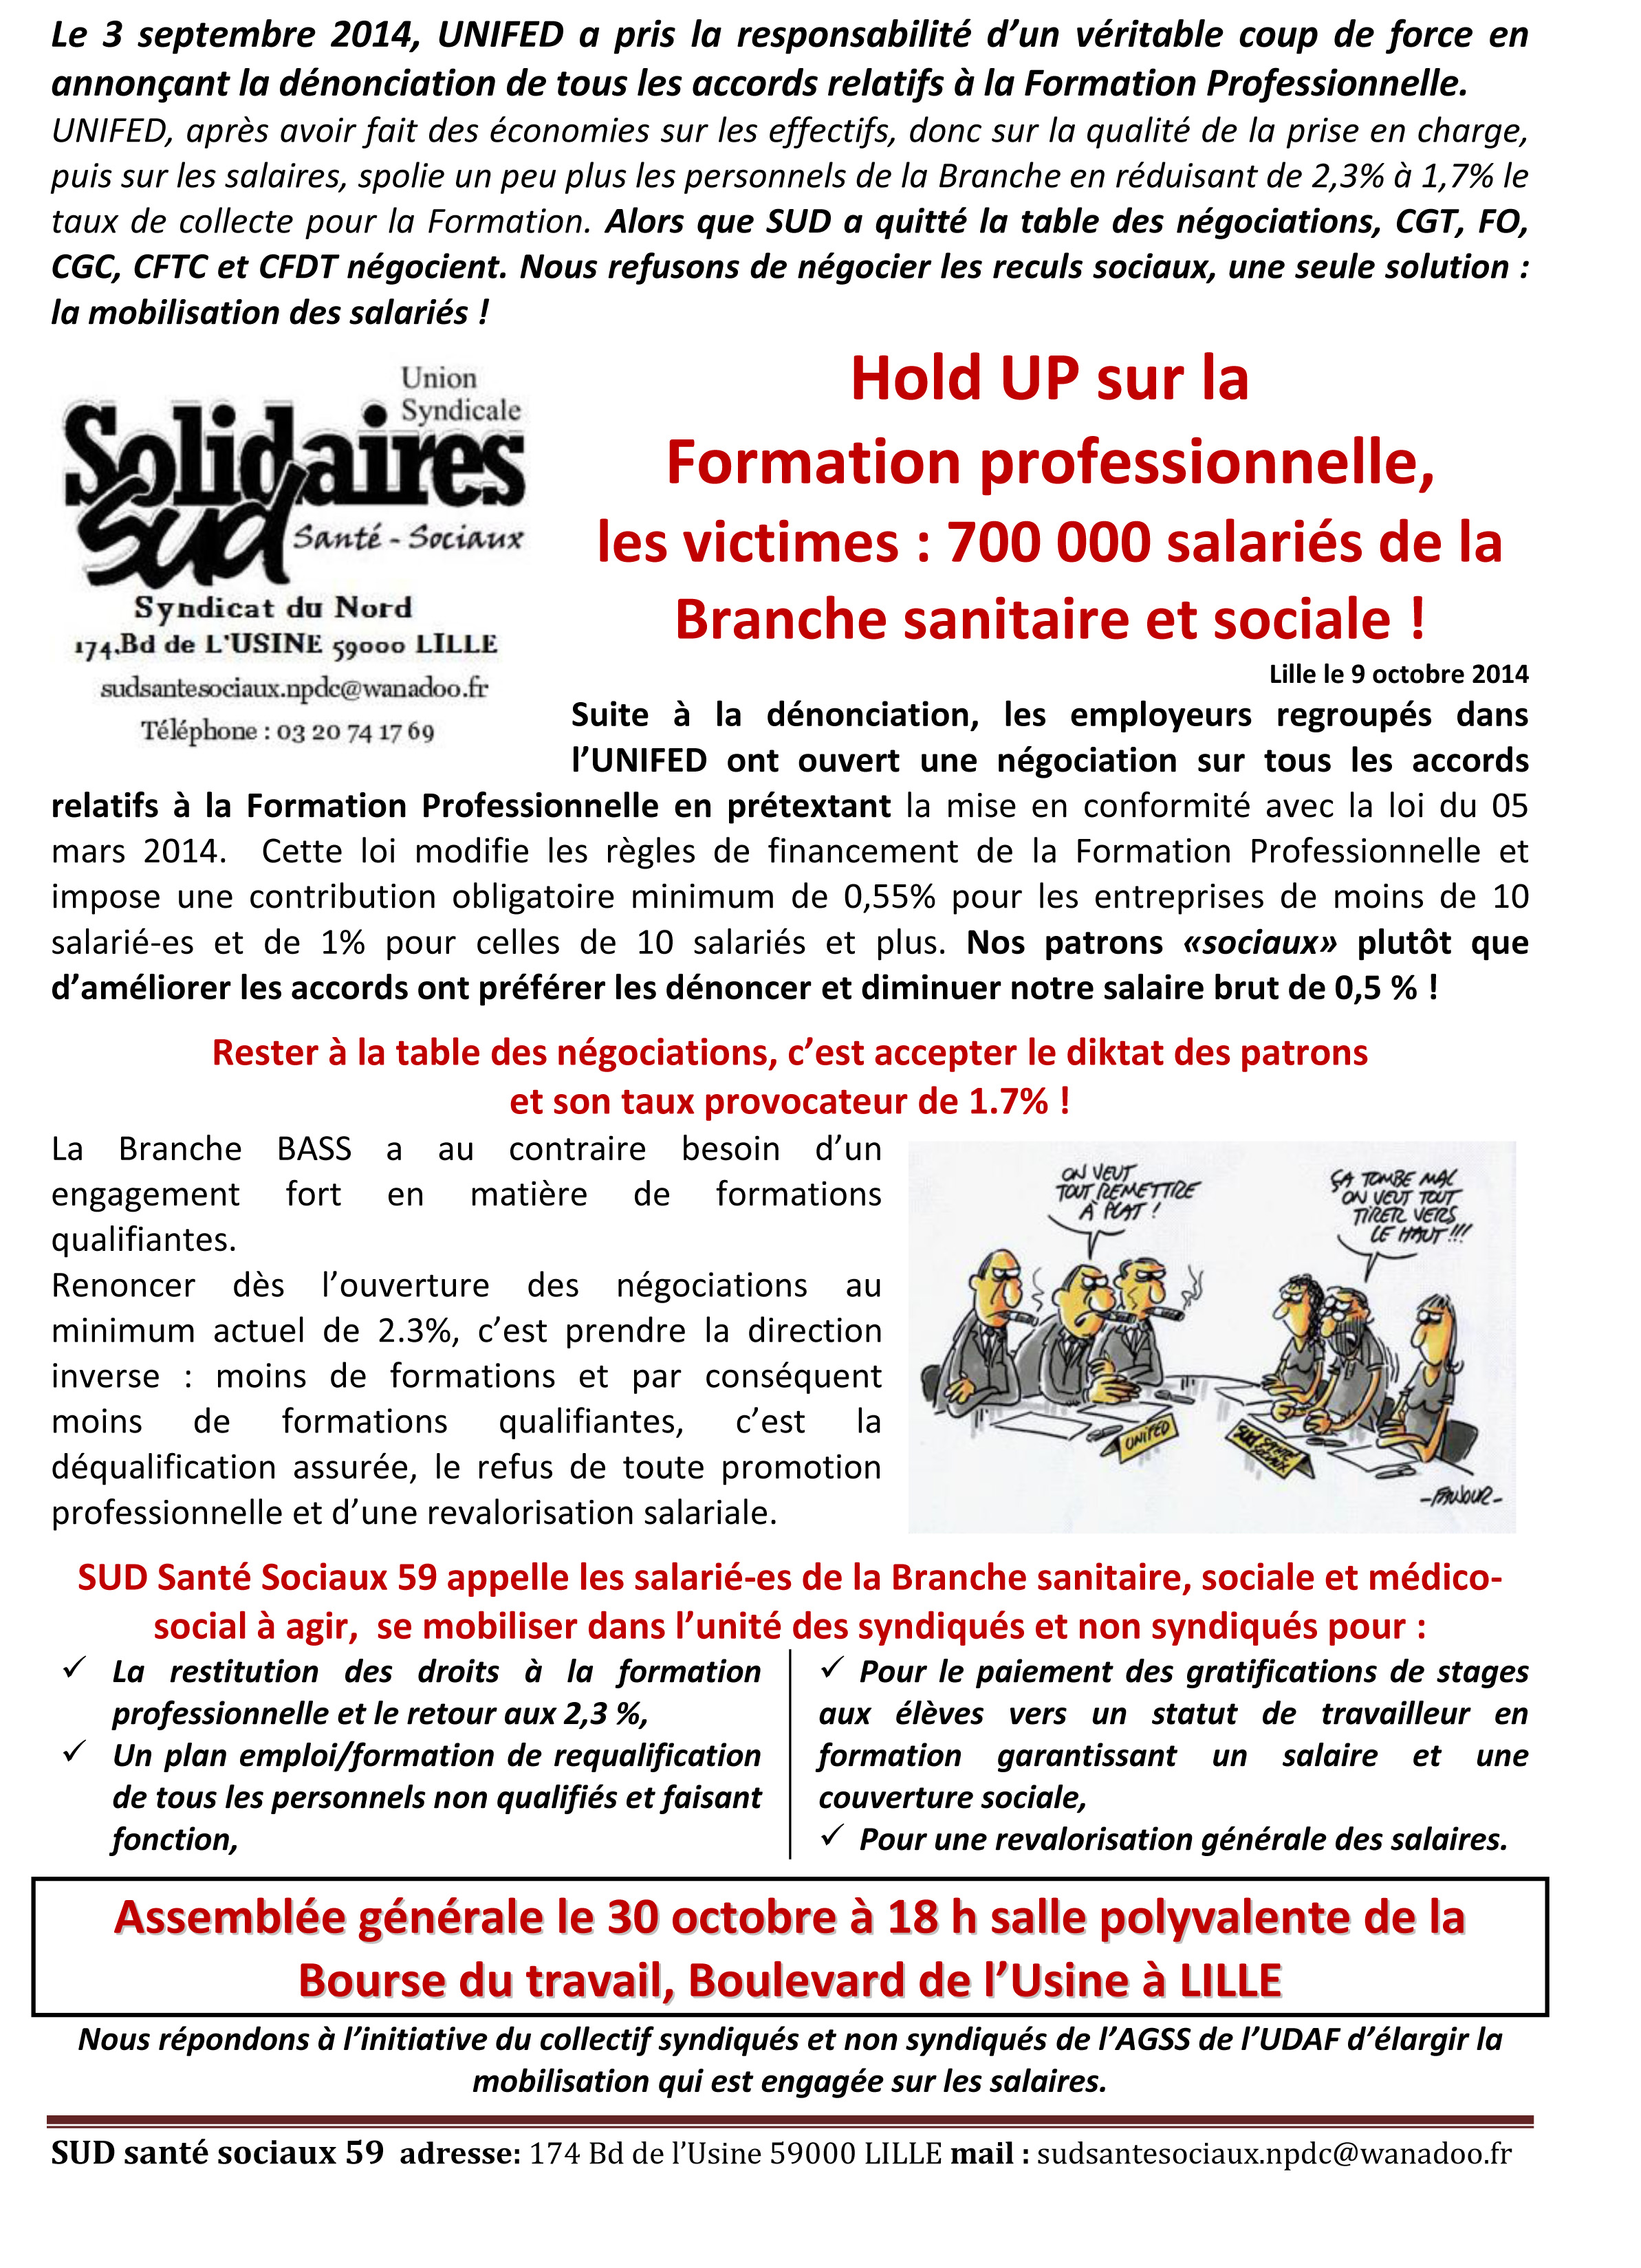 Hold up Formation Professionnelle oct 14